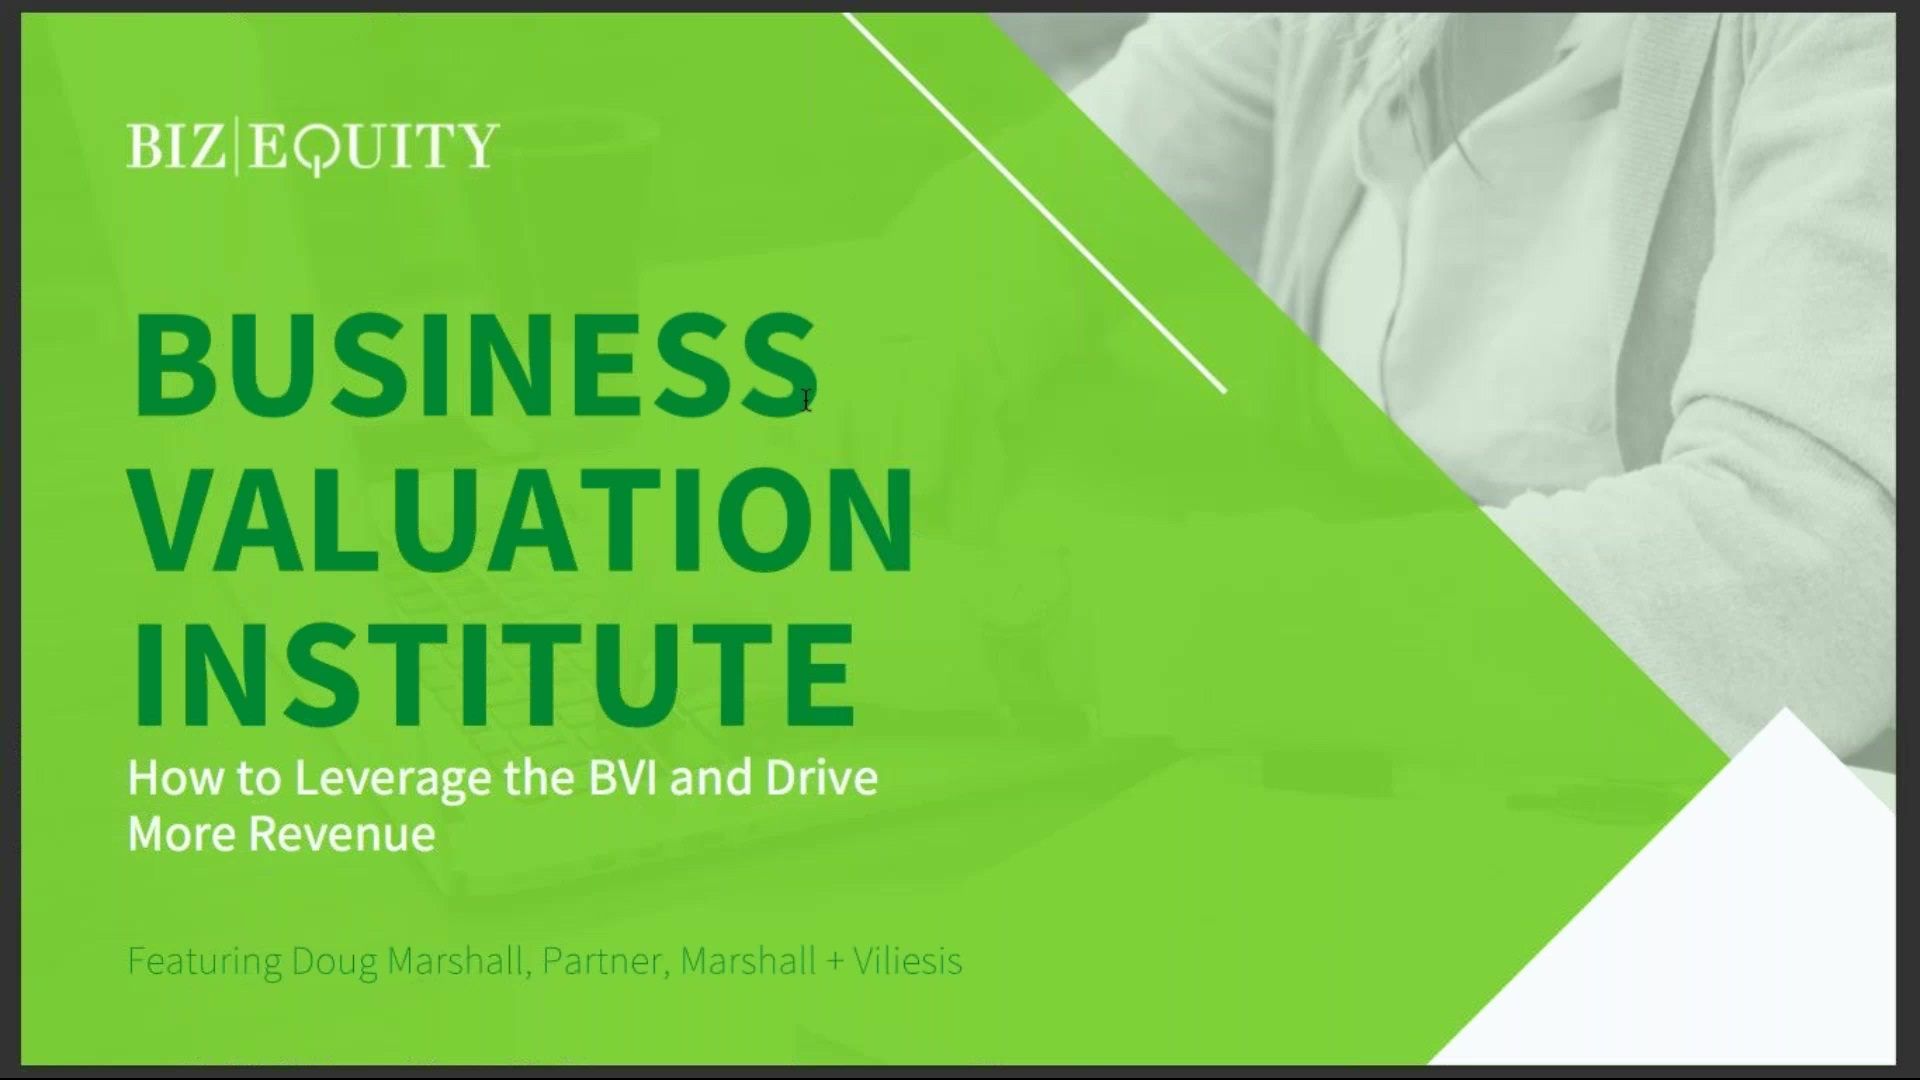 Business Valuation Institute_ How to Leverage the BVI and Drive More Revenue